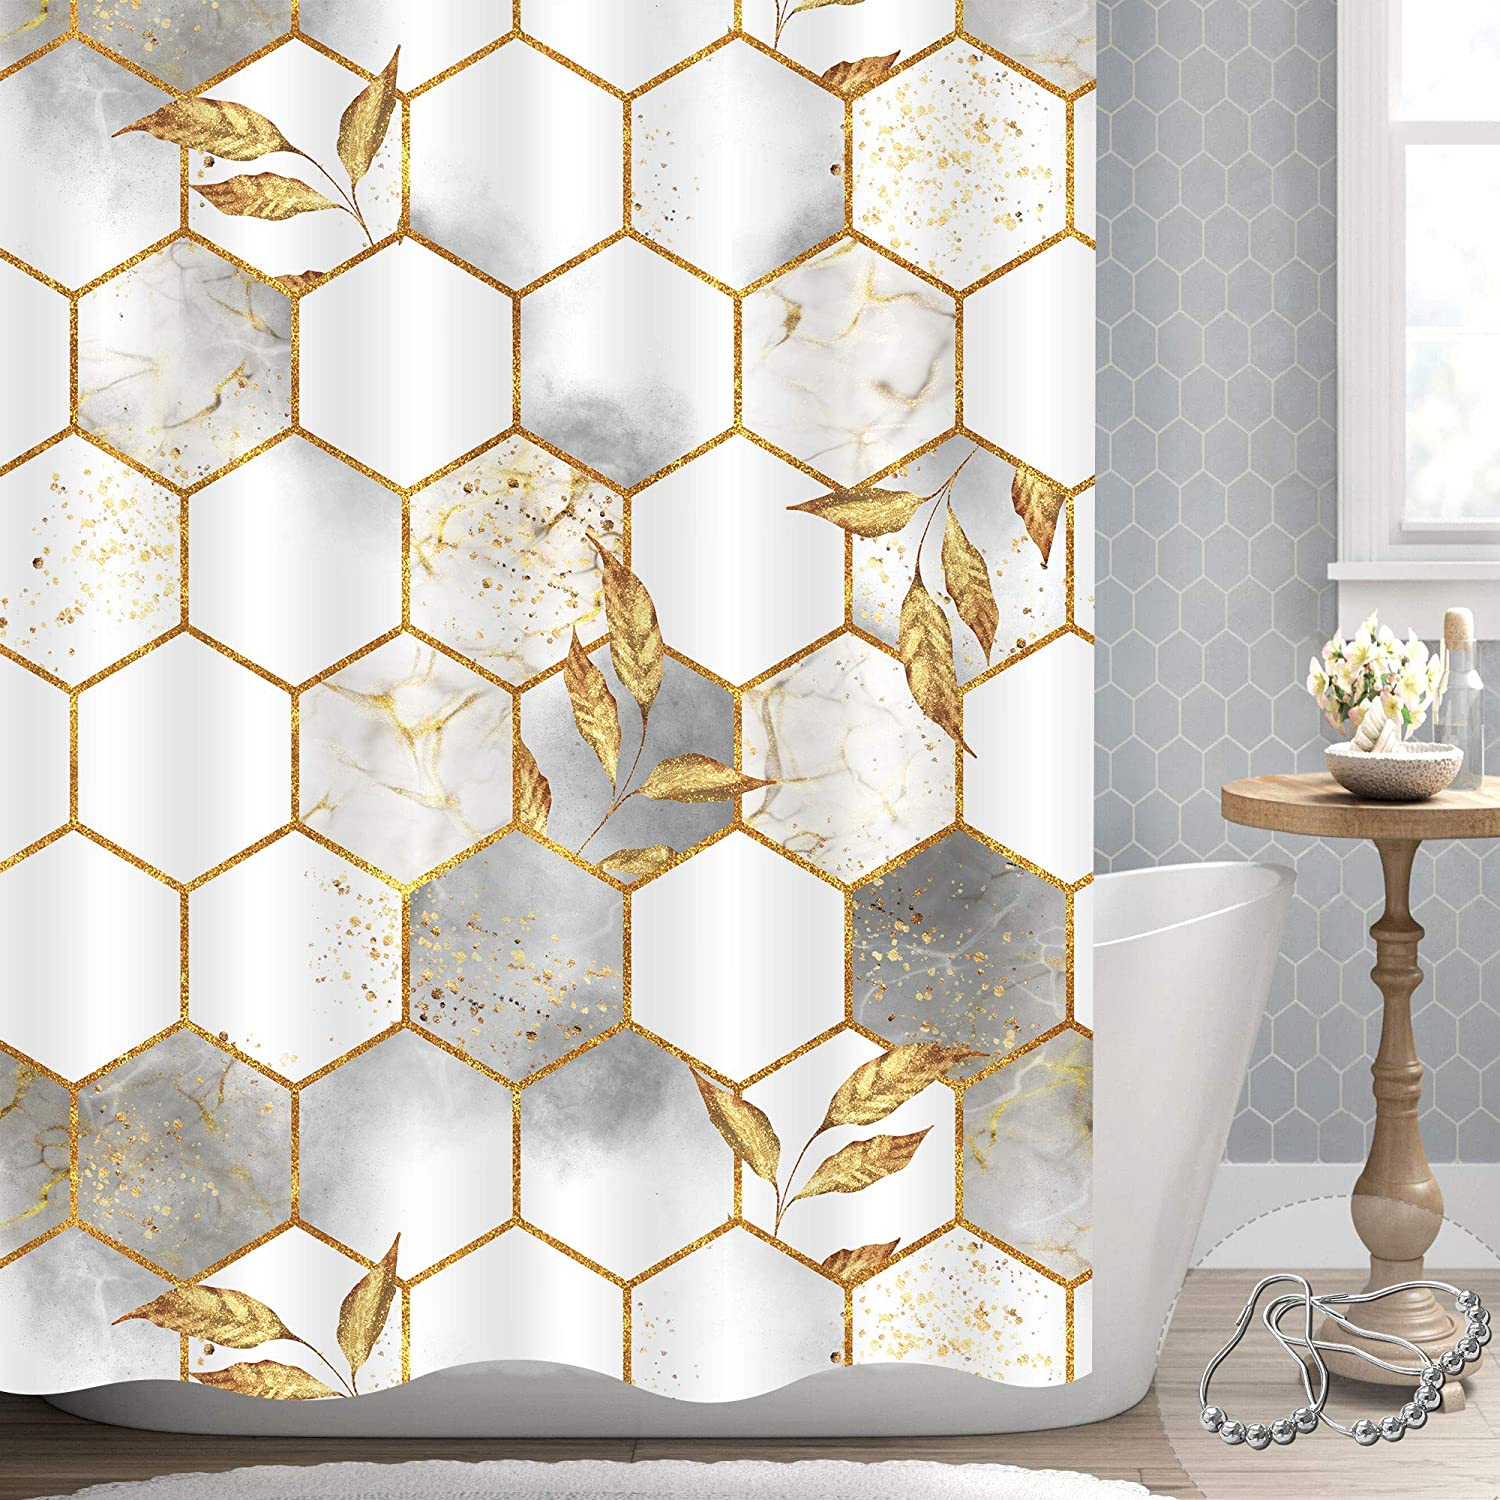 Gibelle Extra Wide Shower Curtain for All お気に入 Clawfoot Tub Aro Wrap 激安通販販売